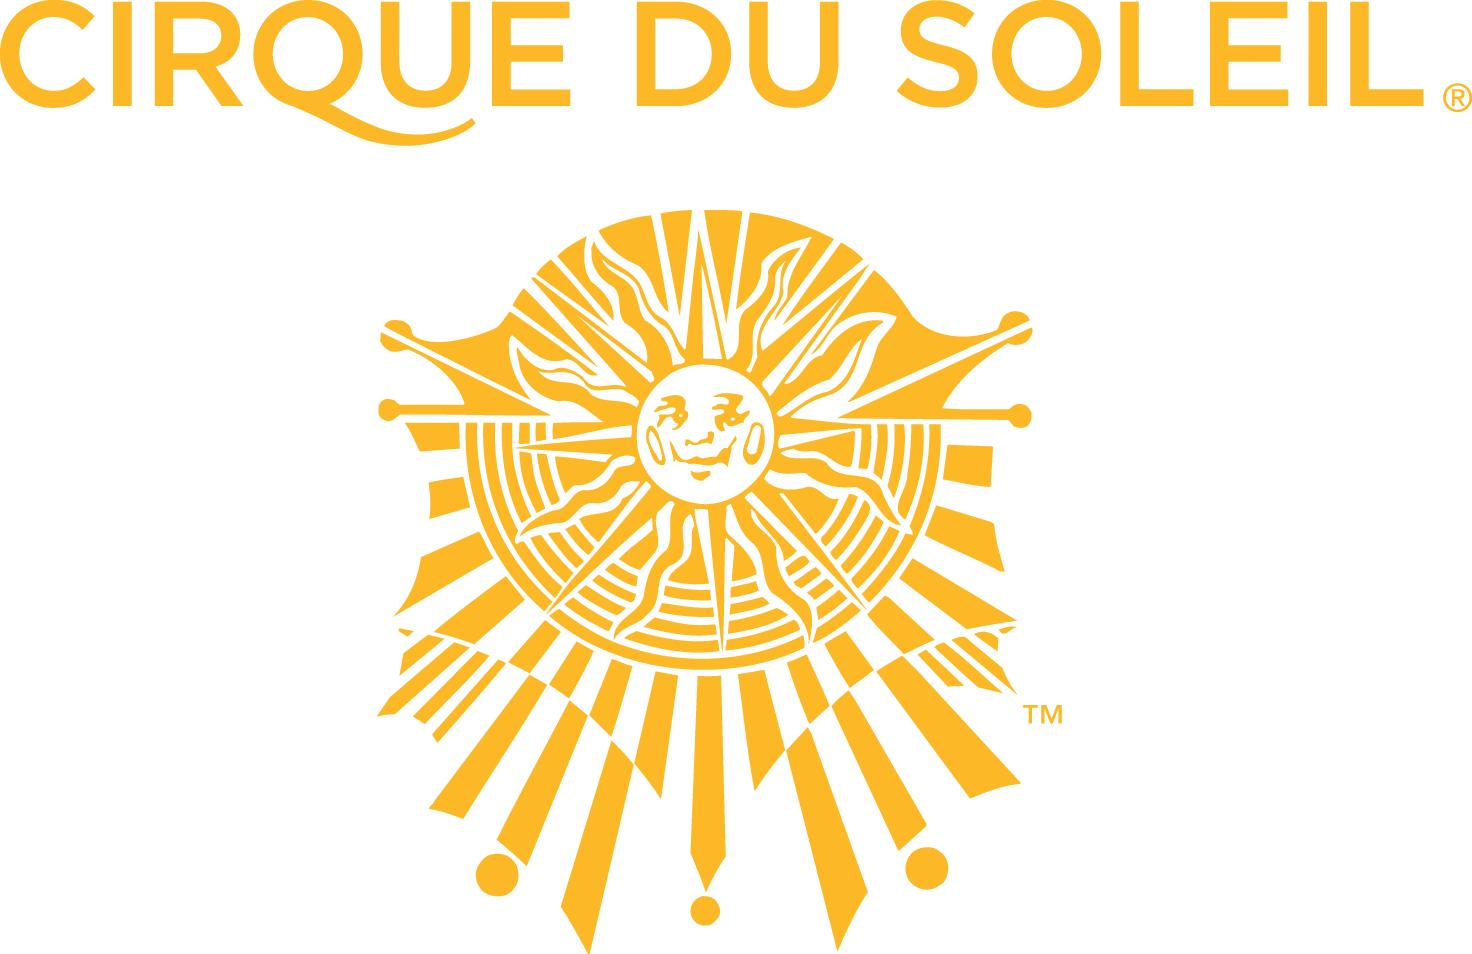 Cirque du Soleil will create the Toronto 2015 Opening Ceremony